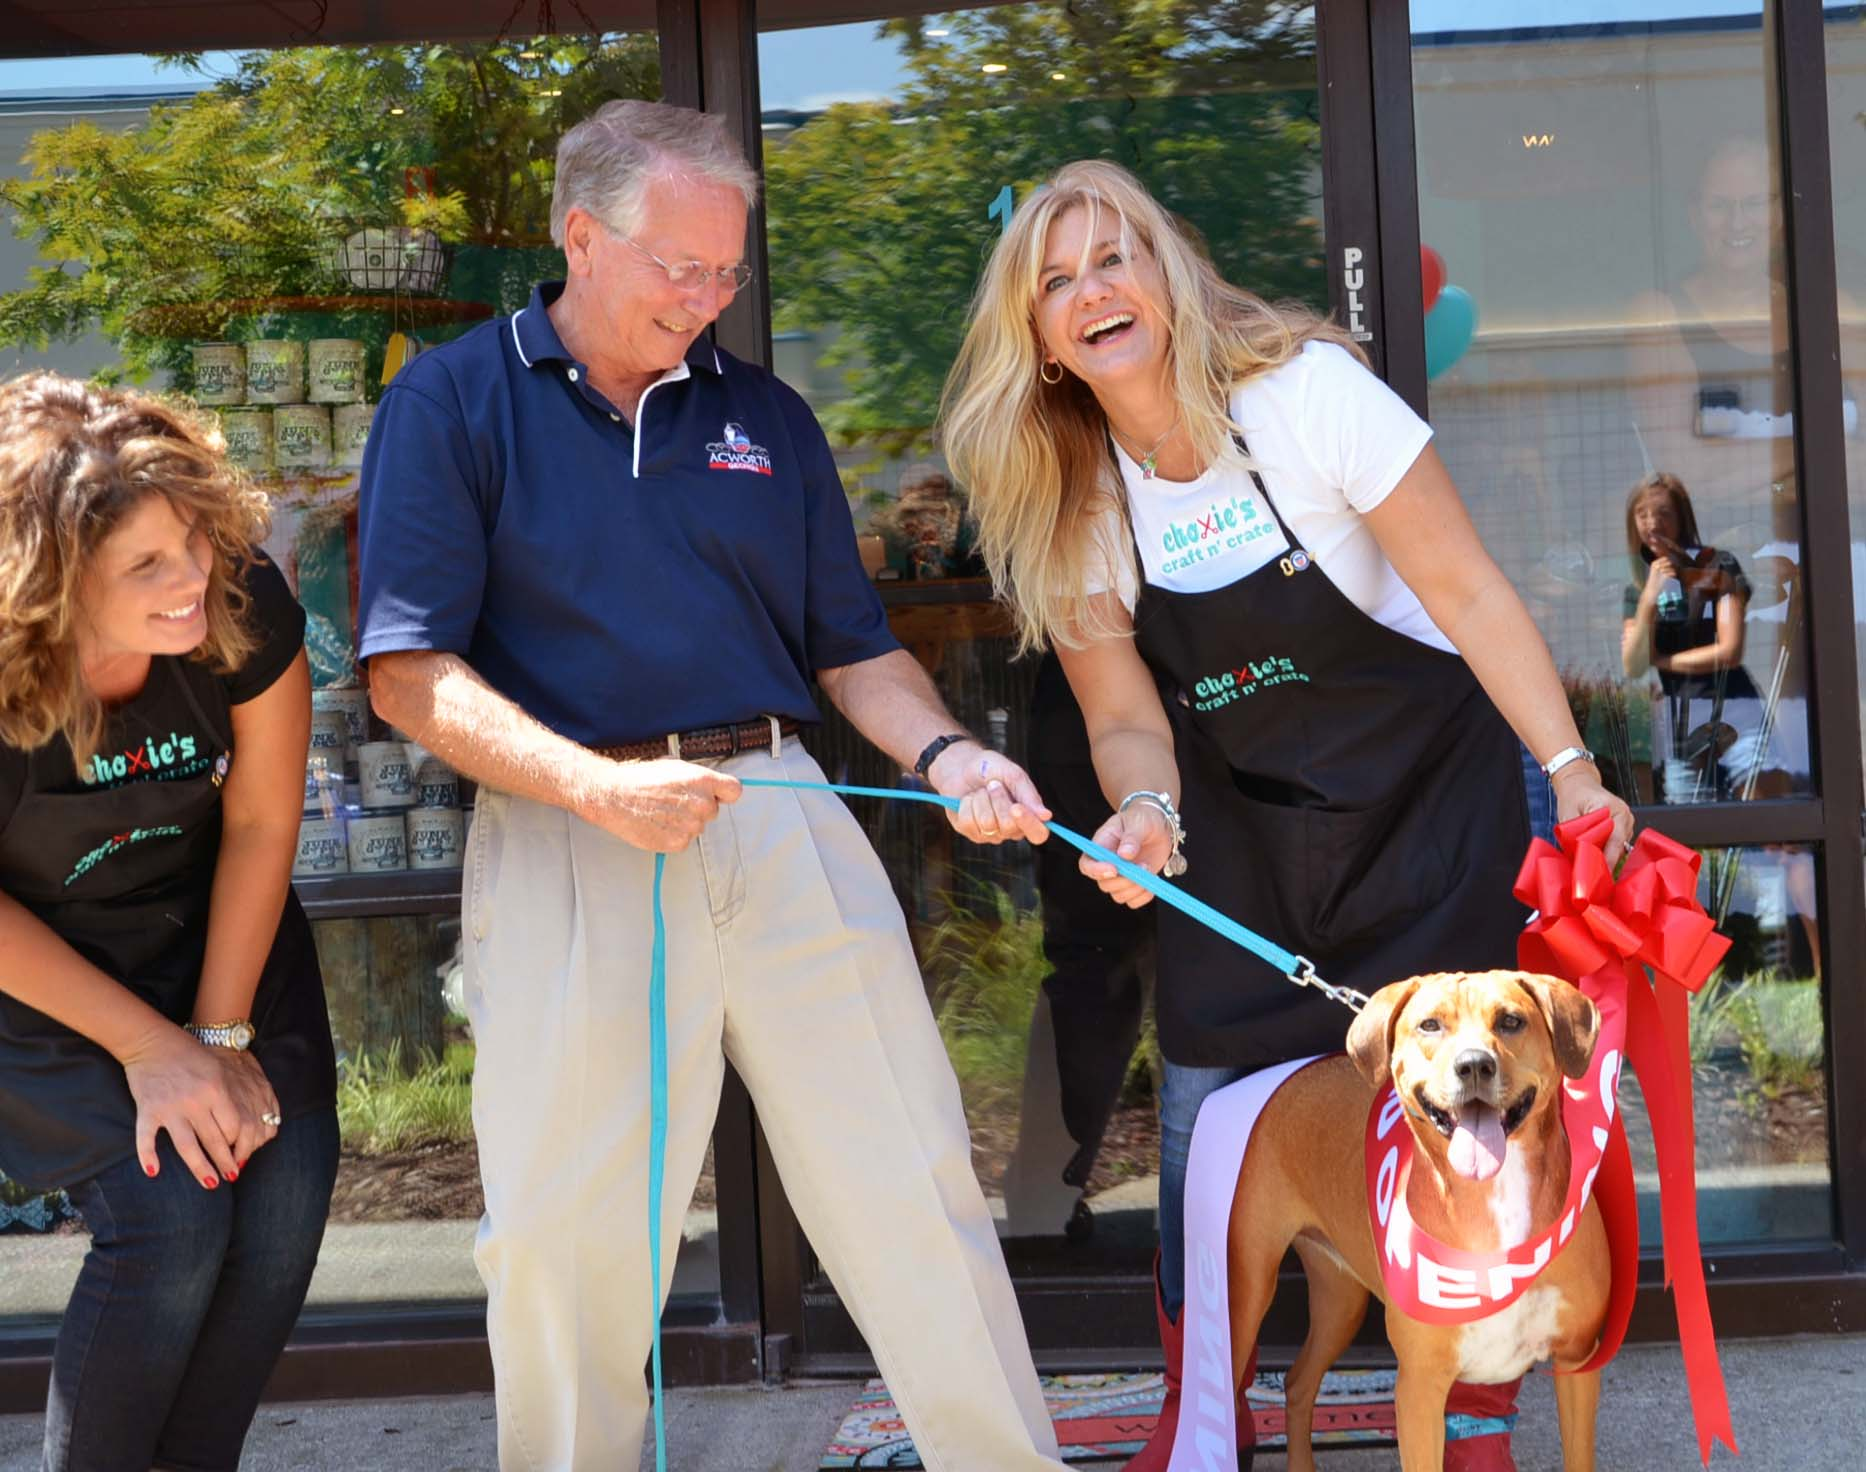 Ribbon Cutting for Choxie's Craft N' Crate 2